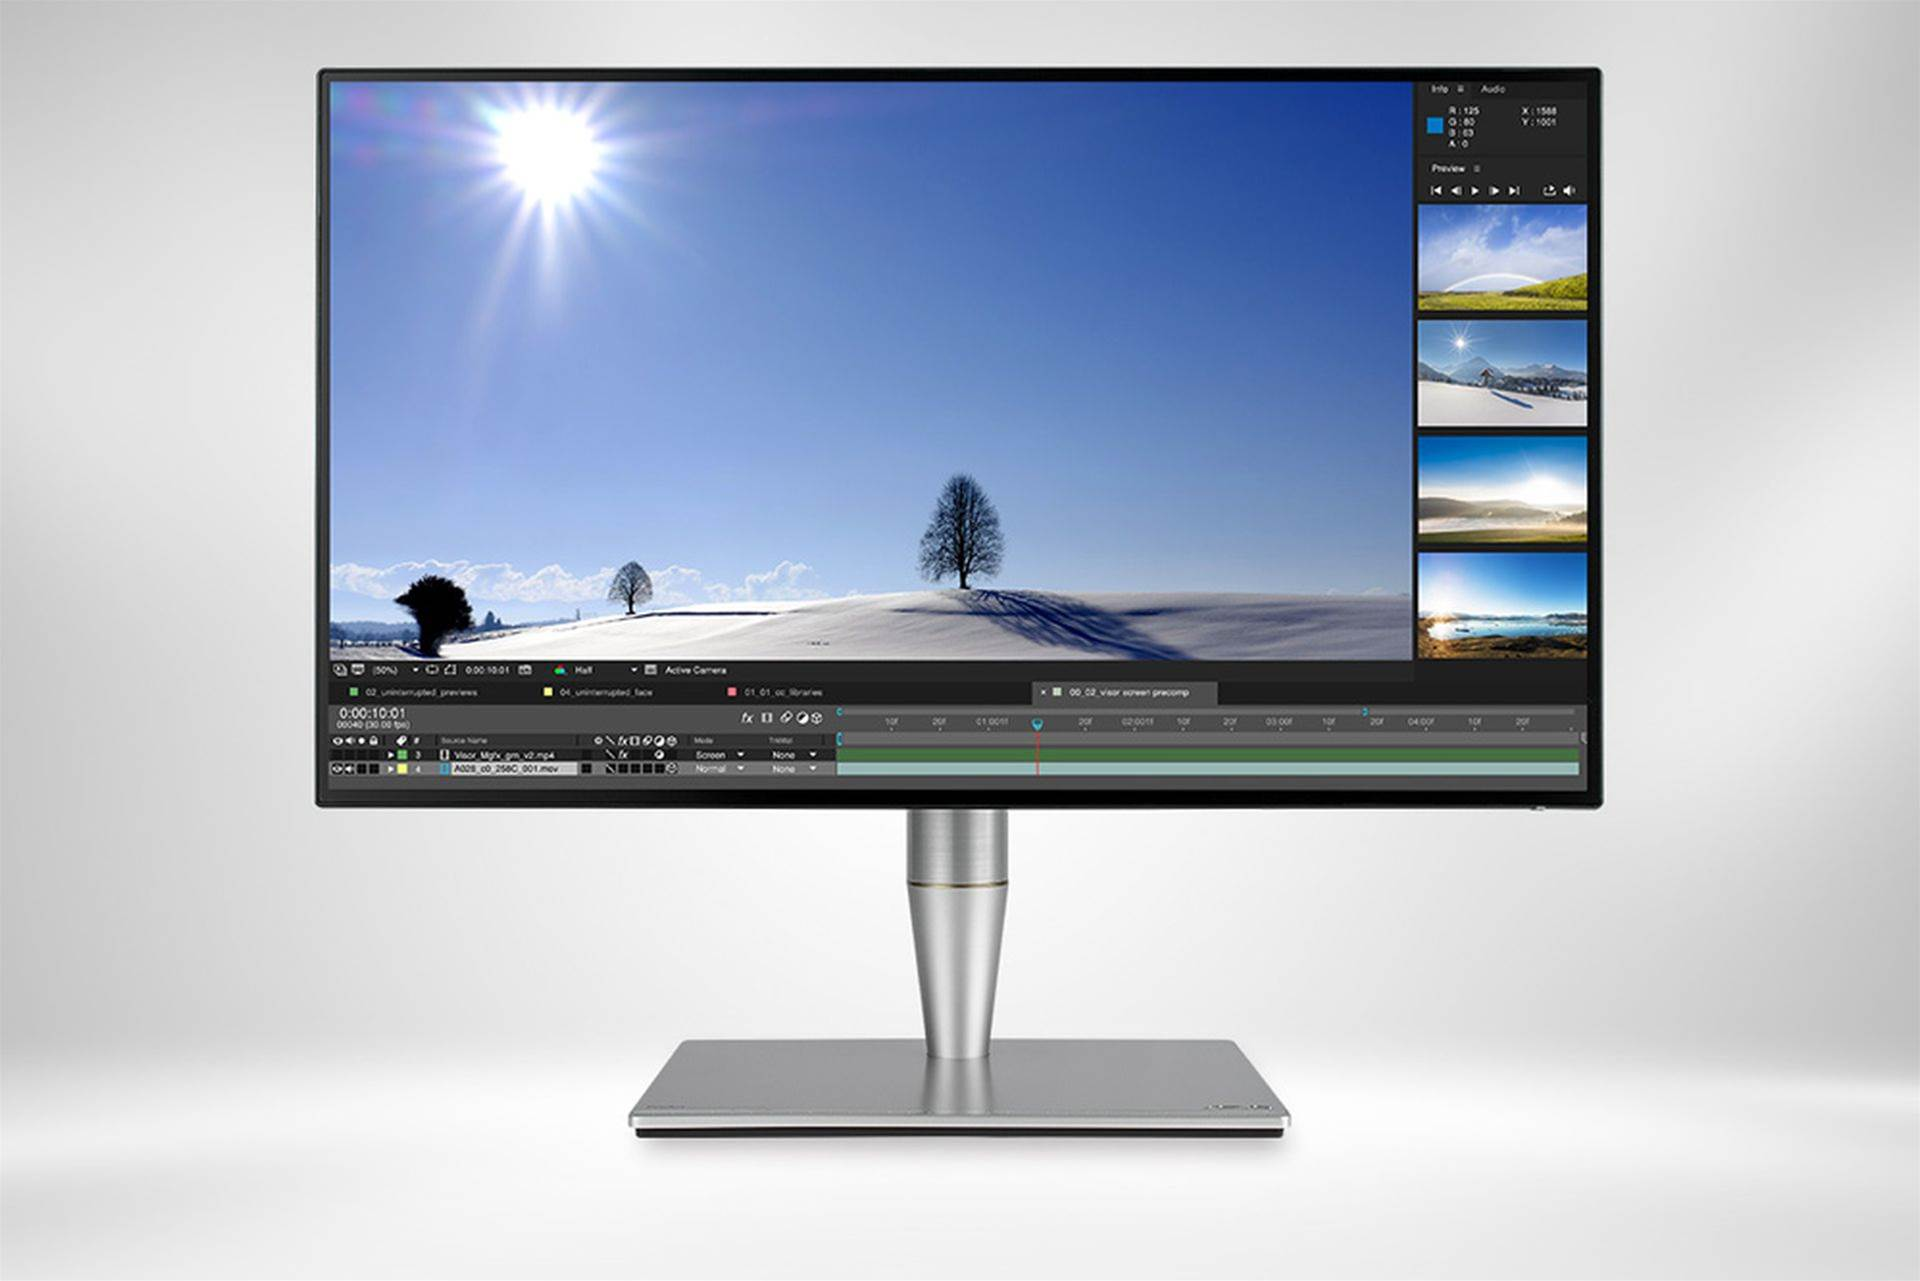 Review: Asus ProArt PA27AC HDR professional monitor